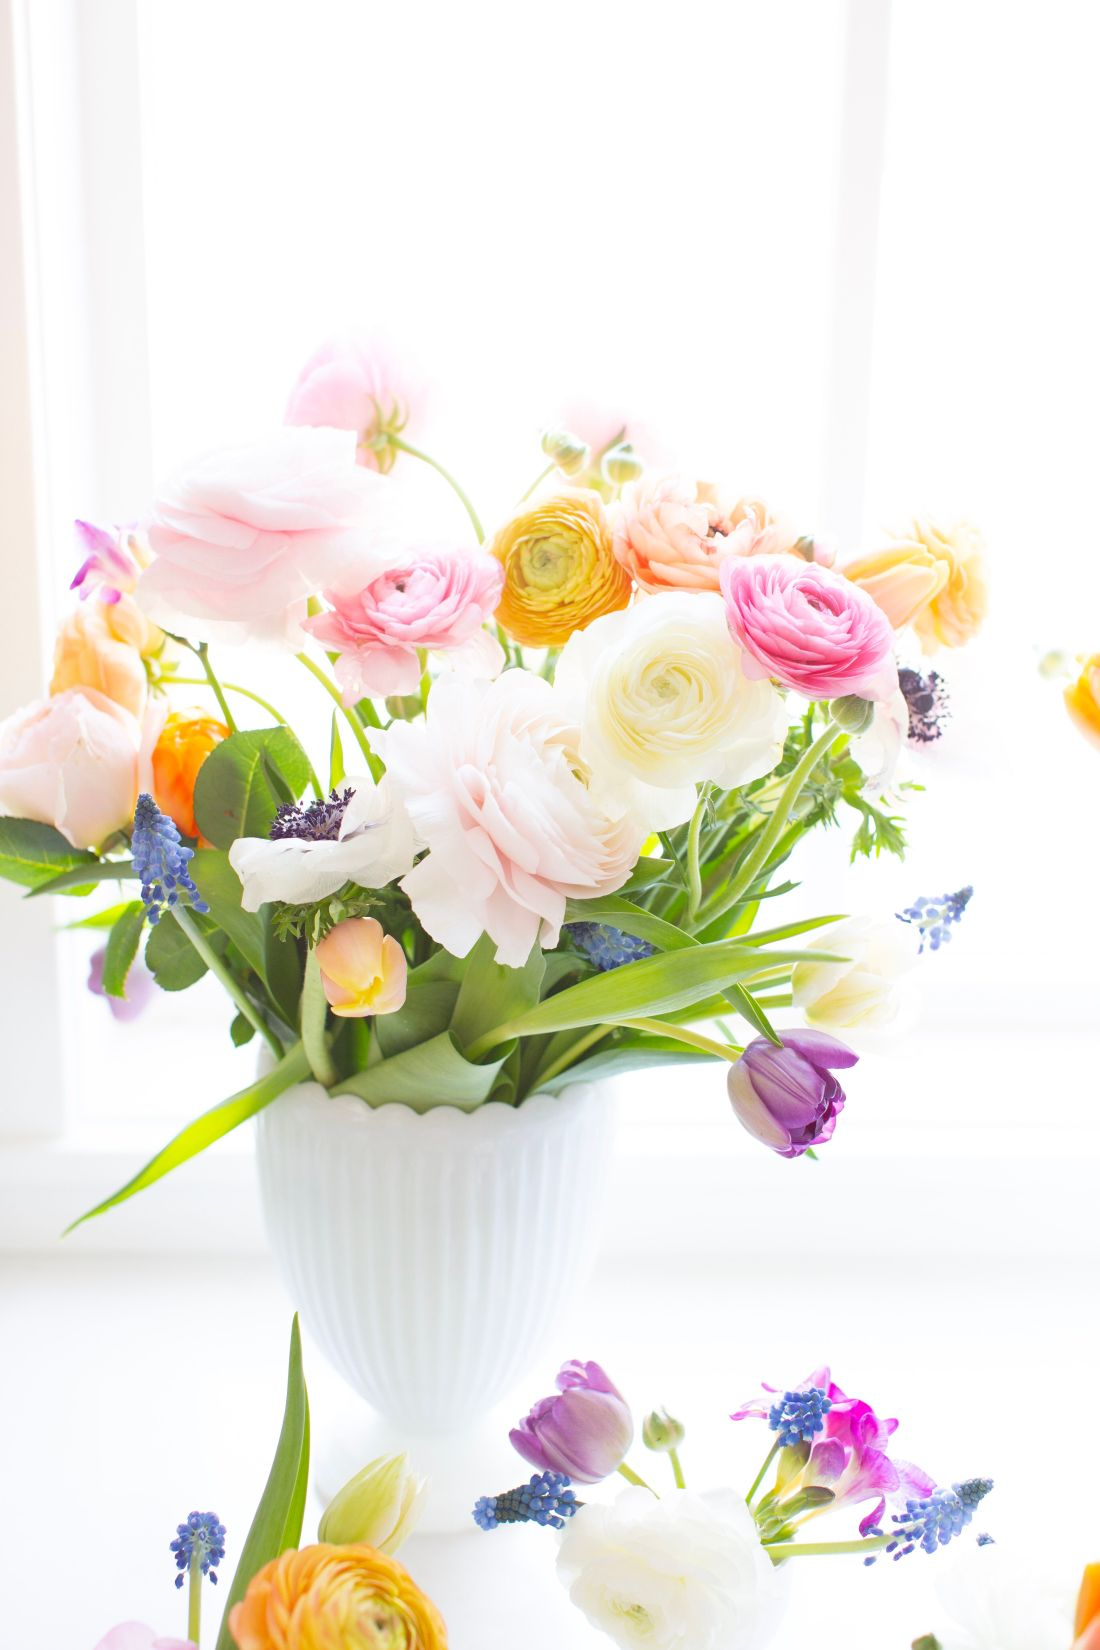 Spring Flowers with ranunculus, tulips and grape hyacinth in a milk glass vase